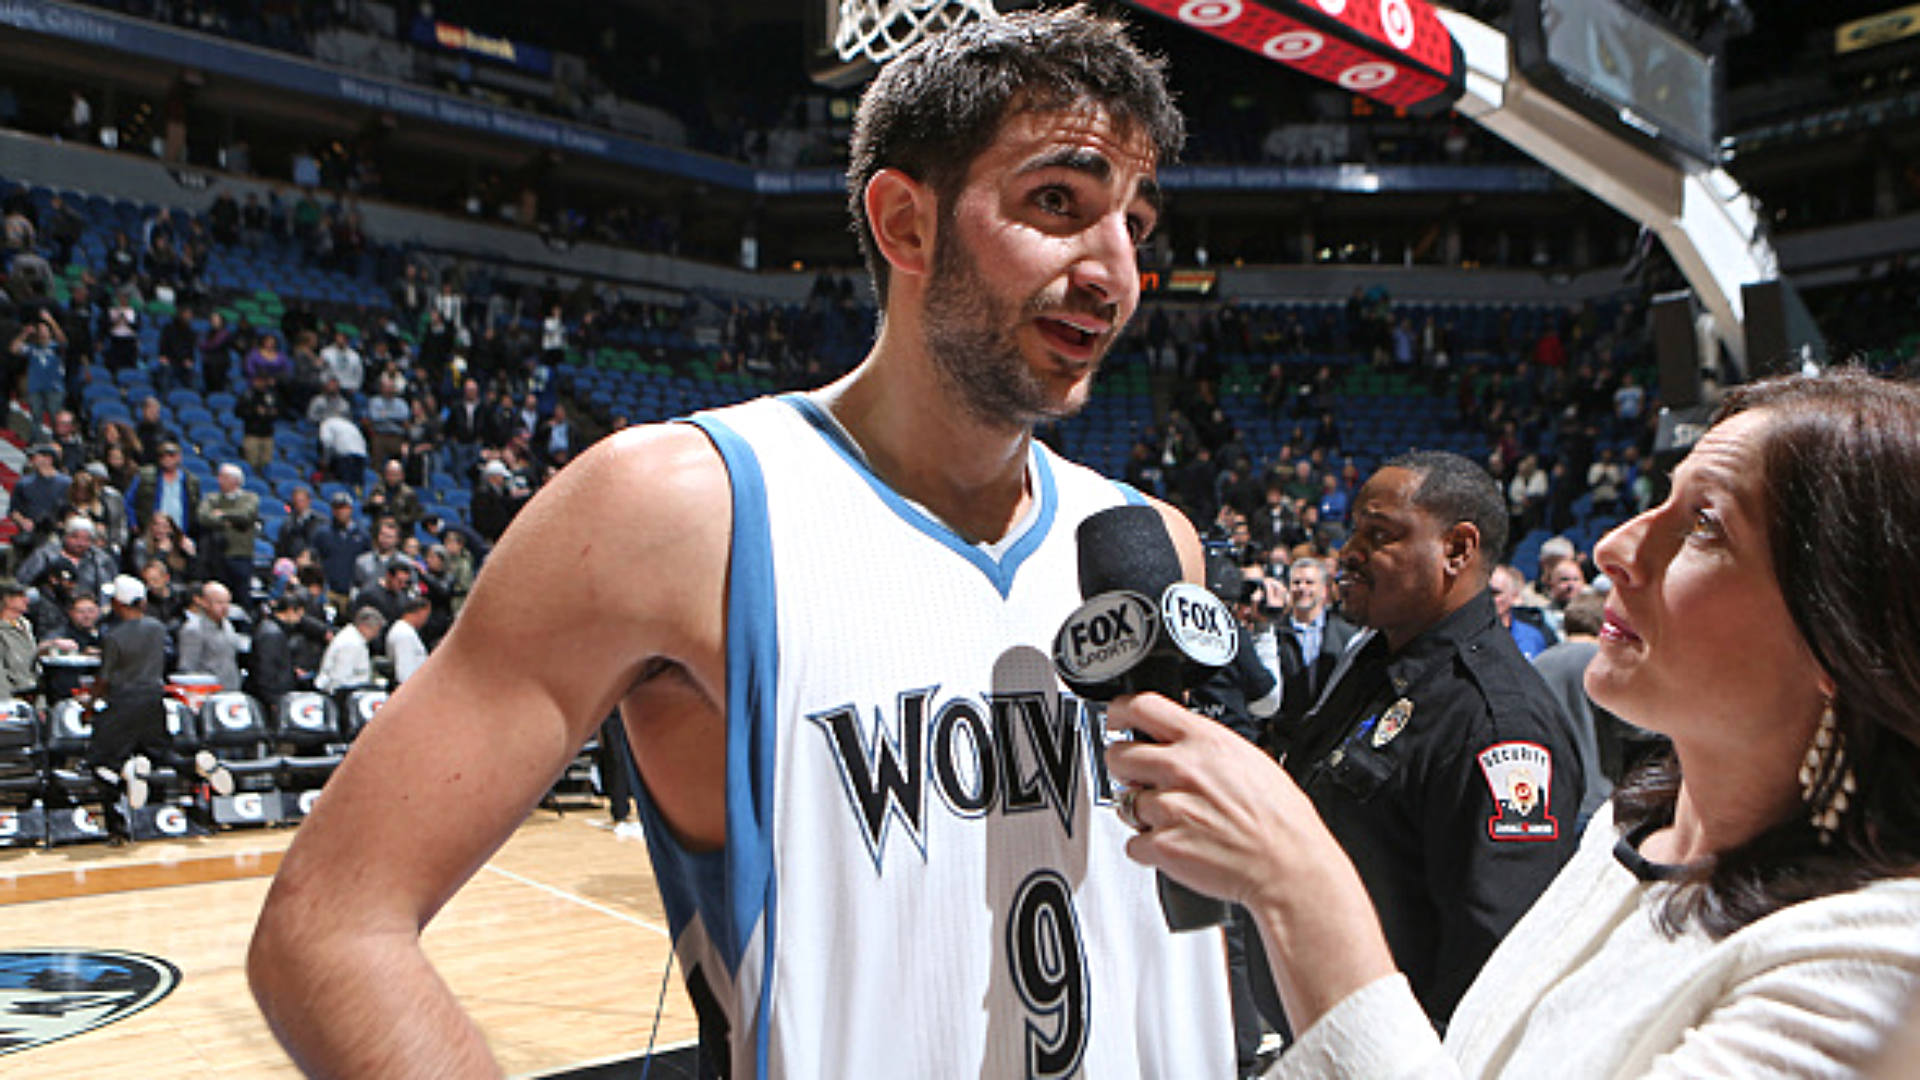 Ricky-Rubio-020515-FTR-Getty.jpg